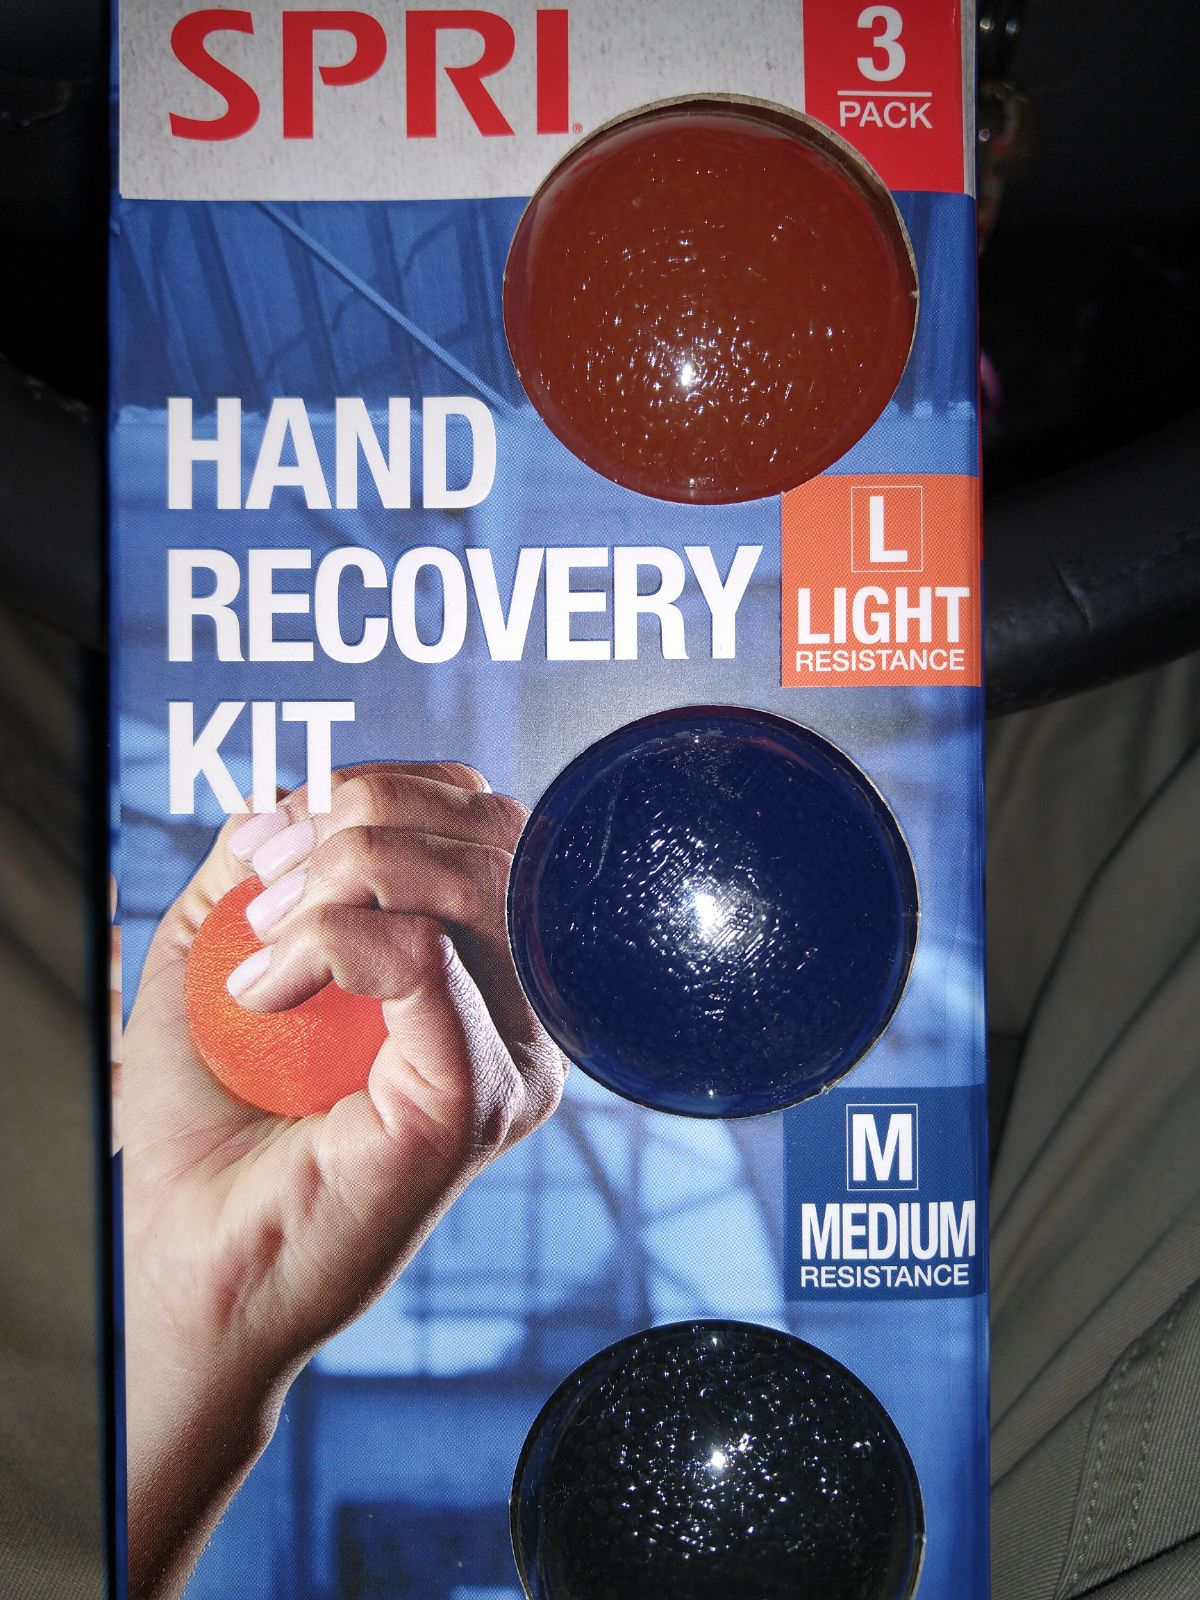 Hand recovery kit